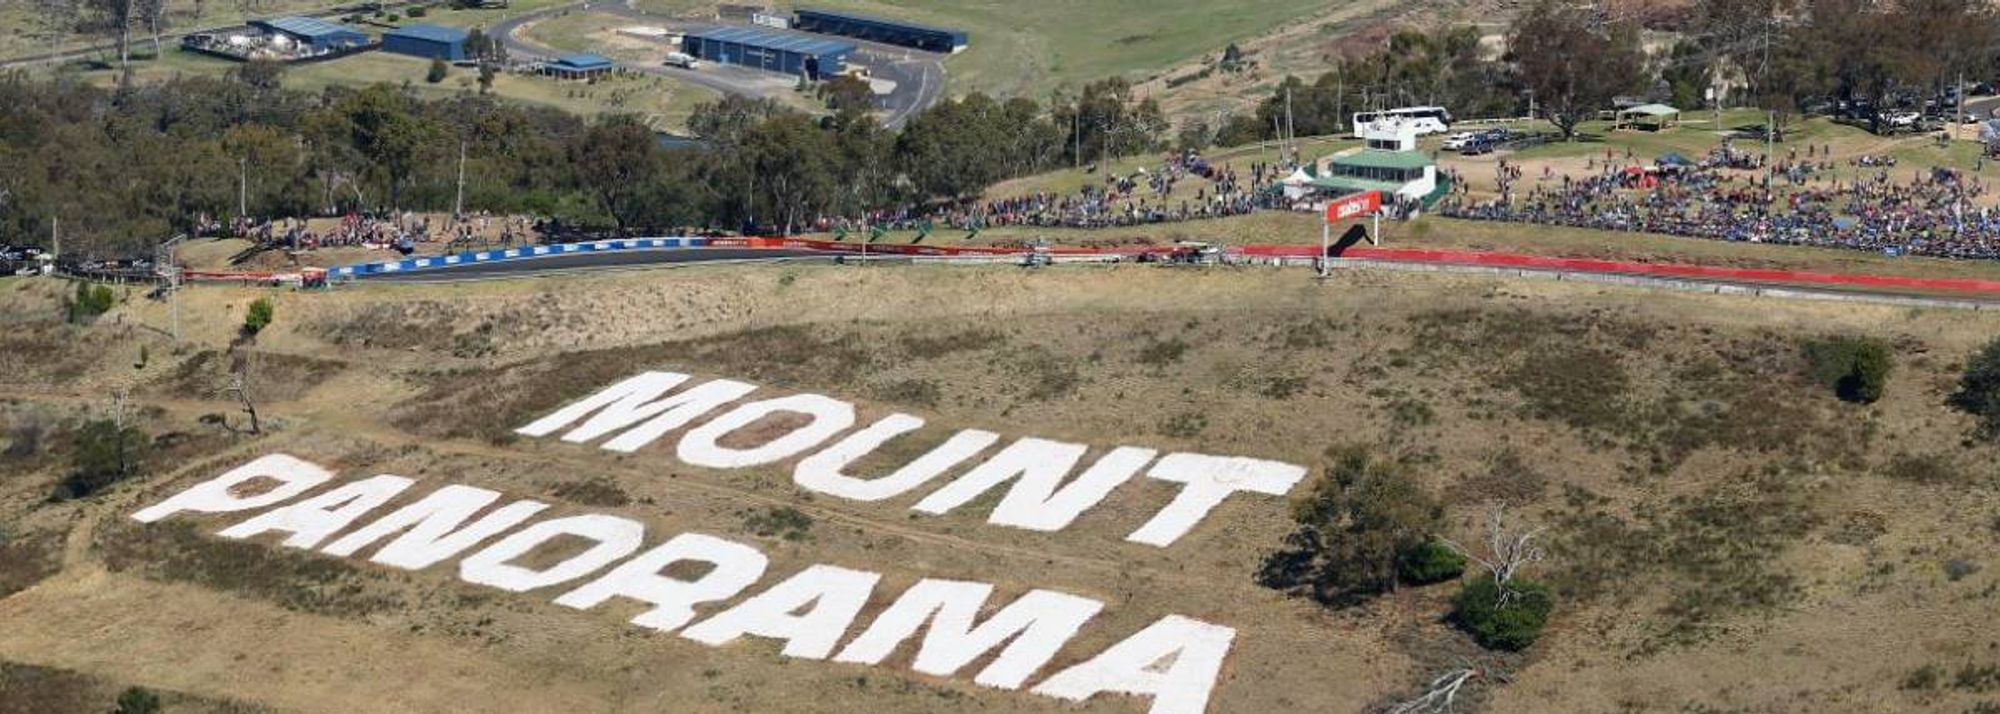 World Athletics and the local organising committee (LOC) for the World Athletics Cross Country Championships Bathurst 2022 have agreed to postpone the championships, which was scheduled to be held in Bathurst, Australia on 19 February 2022.